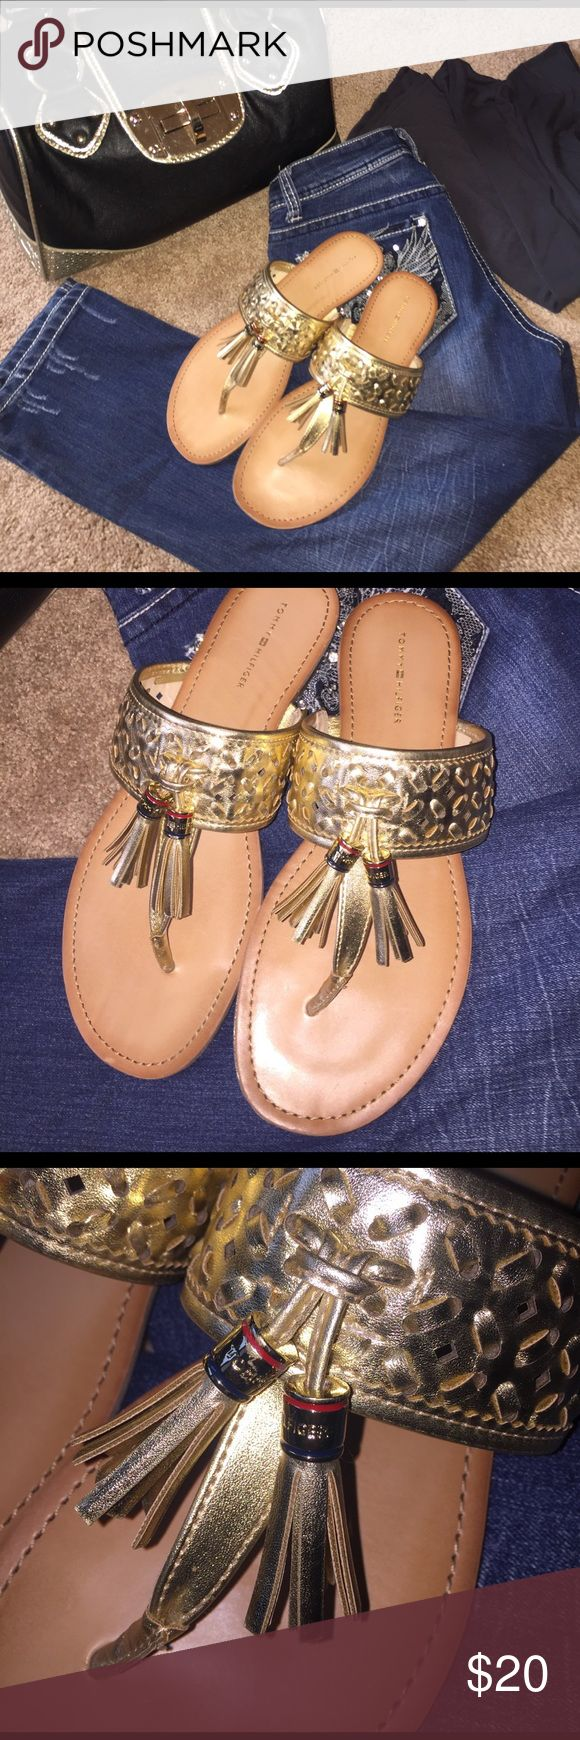 NWOT Tommy Hilfiger gold sandals sz 9 🖤🖤🖤 Tommy Hilfiger NWOT size 9, gorgeous gold sandals. Tassels have signature TH colors and name. Soles, toes, heels all in excellent condition.  🖤🖤🖤🖤 Tommy Hilfiger Shoes Sandals